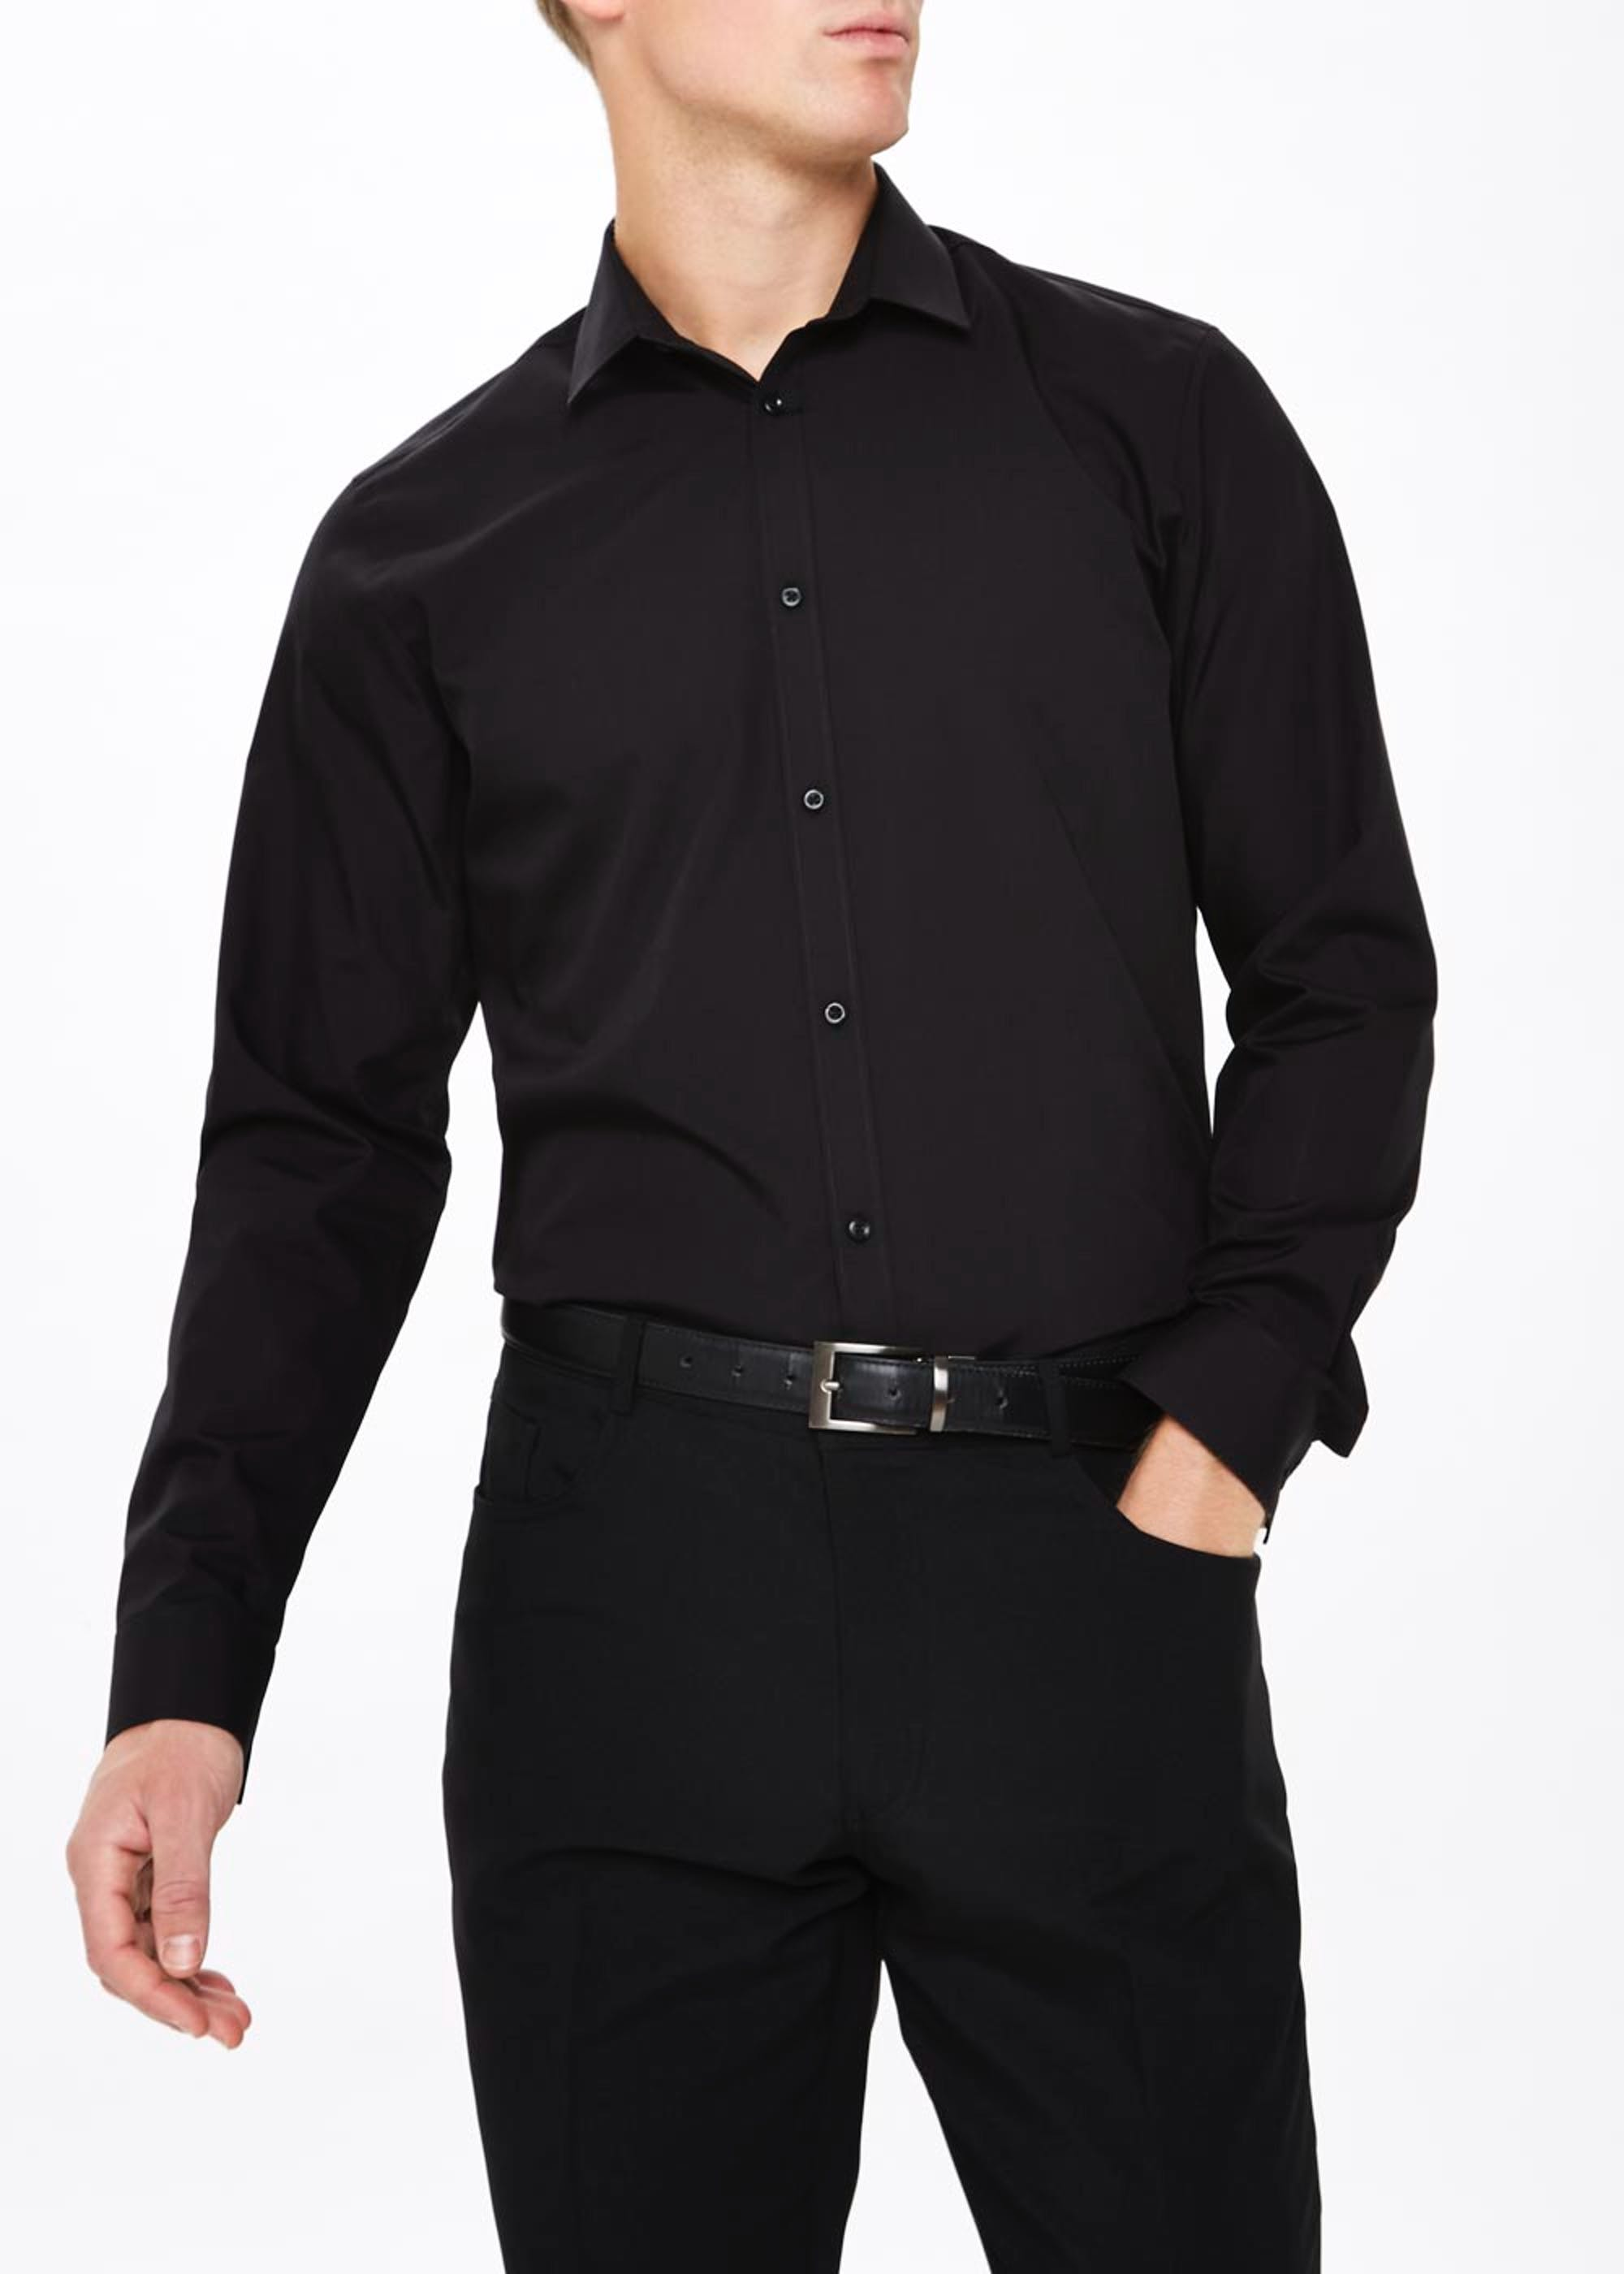 Taylor & Wright Easy Care Regular Fit Long Sleeve Shirt Black 4wG6JK